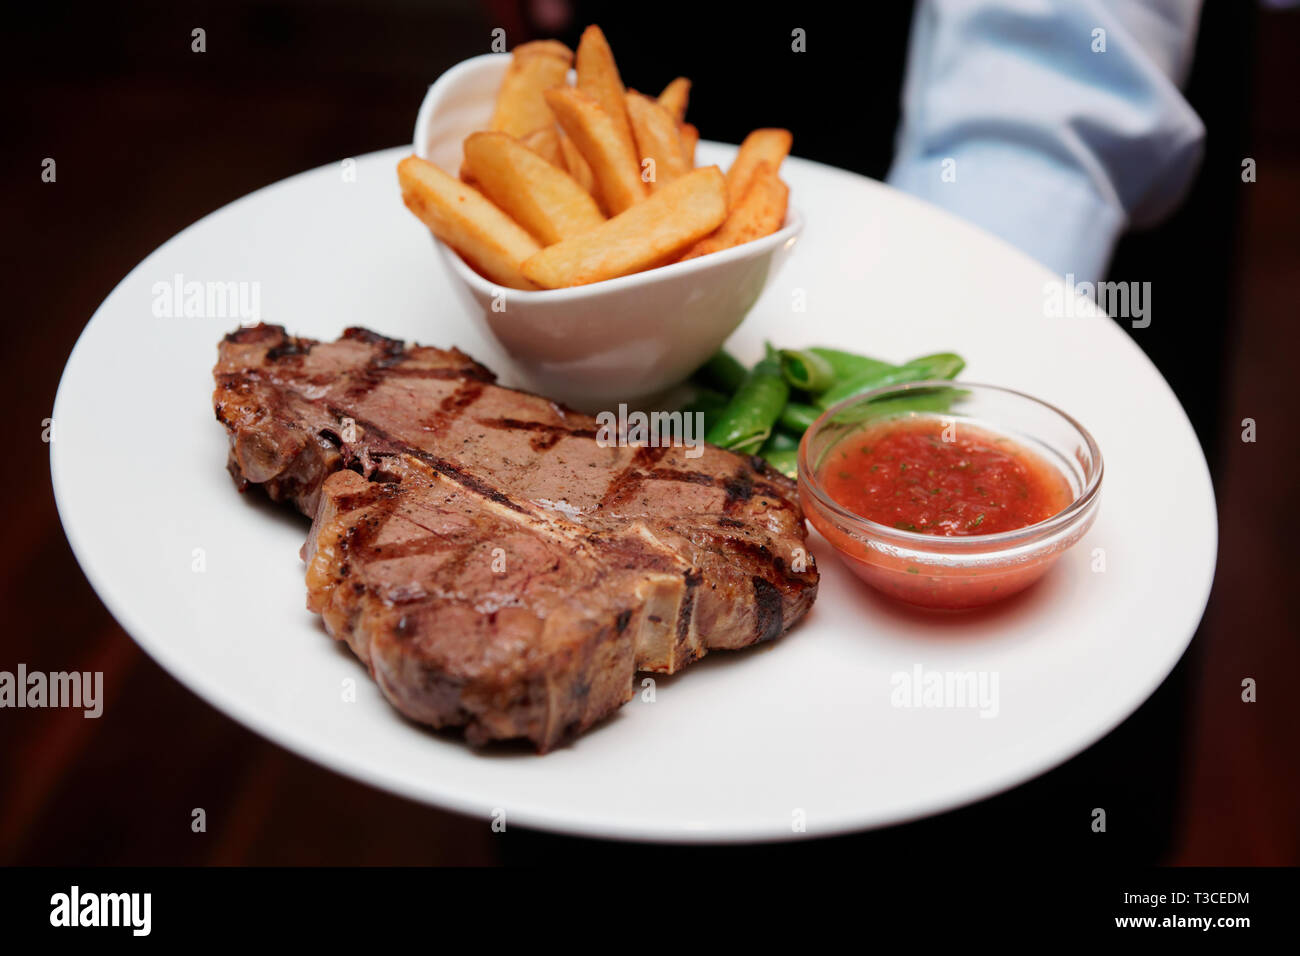 Waiter offering T-bone steak with french fries and hot sauce - Stock Image